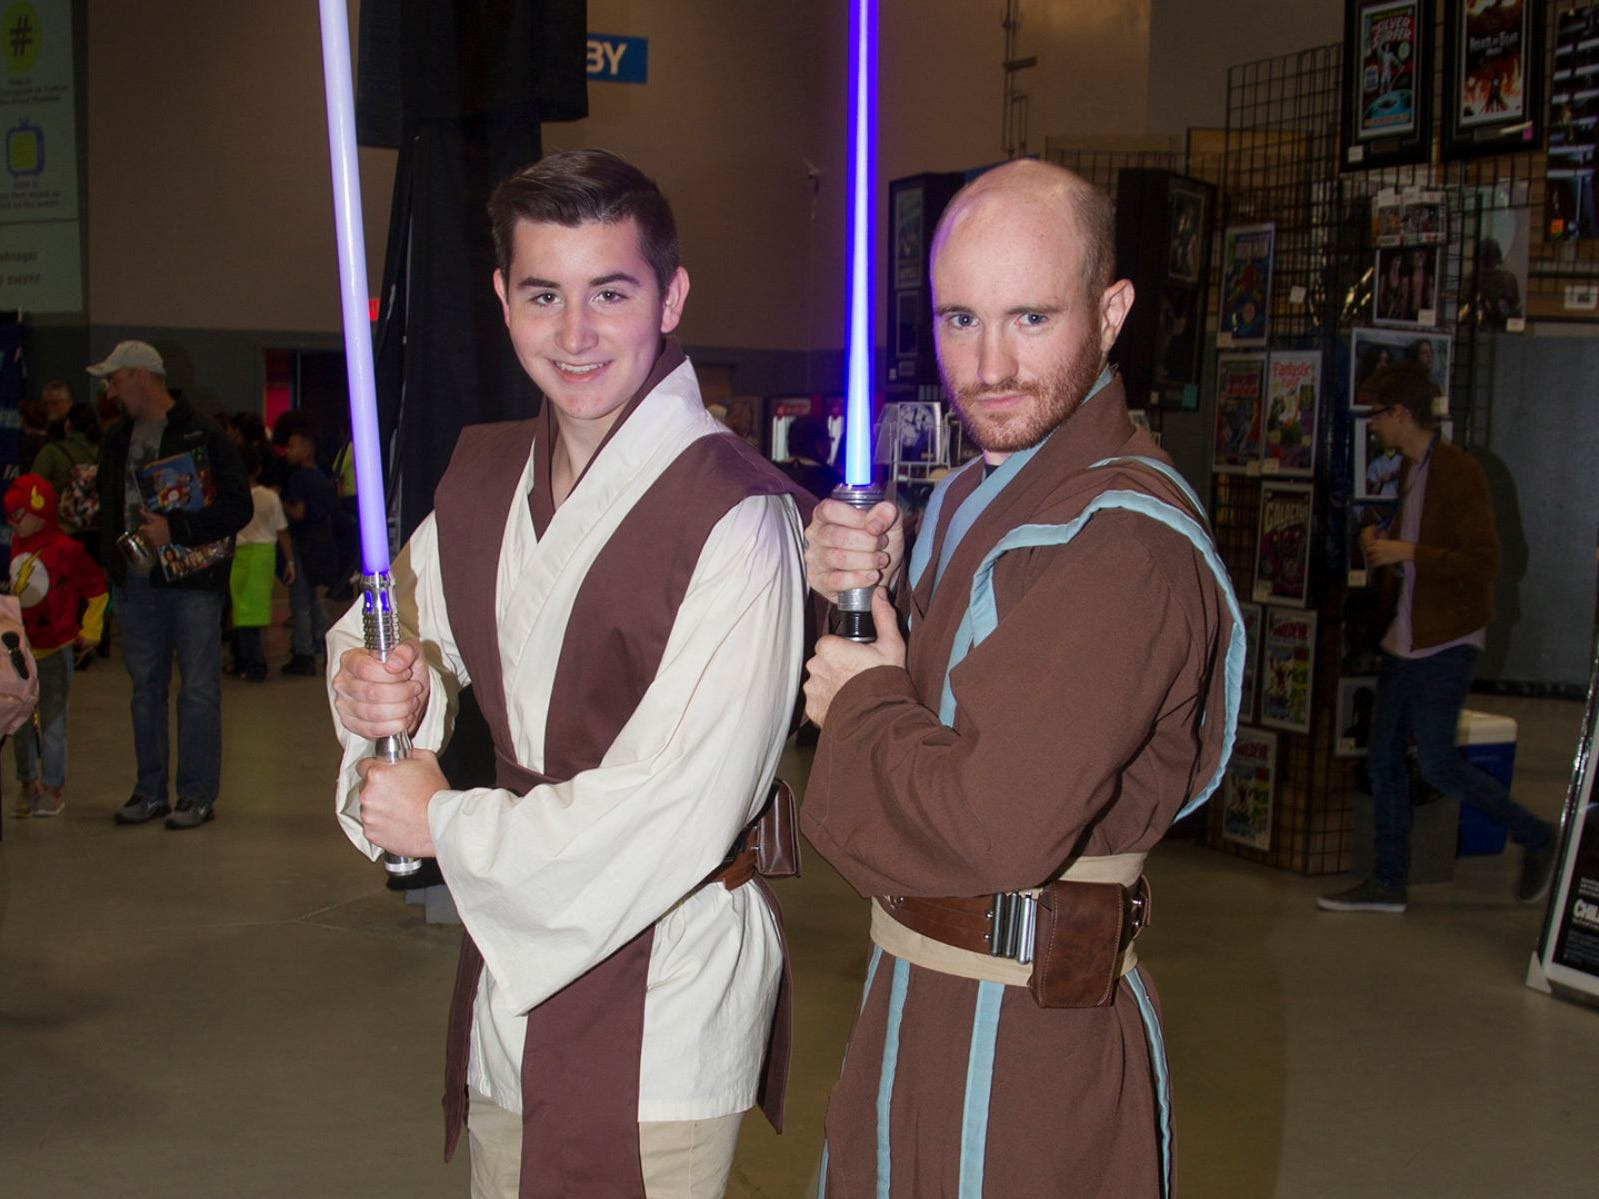 Luke and James as Jedi. The 2018 Heroes and Villains Fan Fest took place at the New Jersey Convention & Expo Center. 09/09/2018